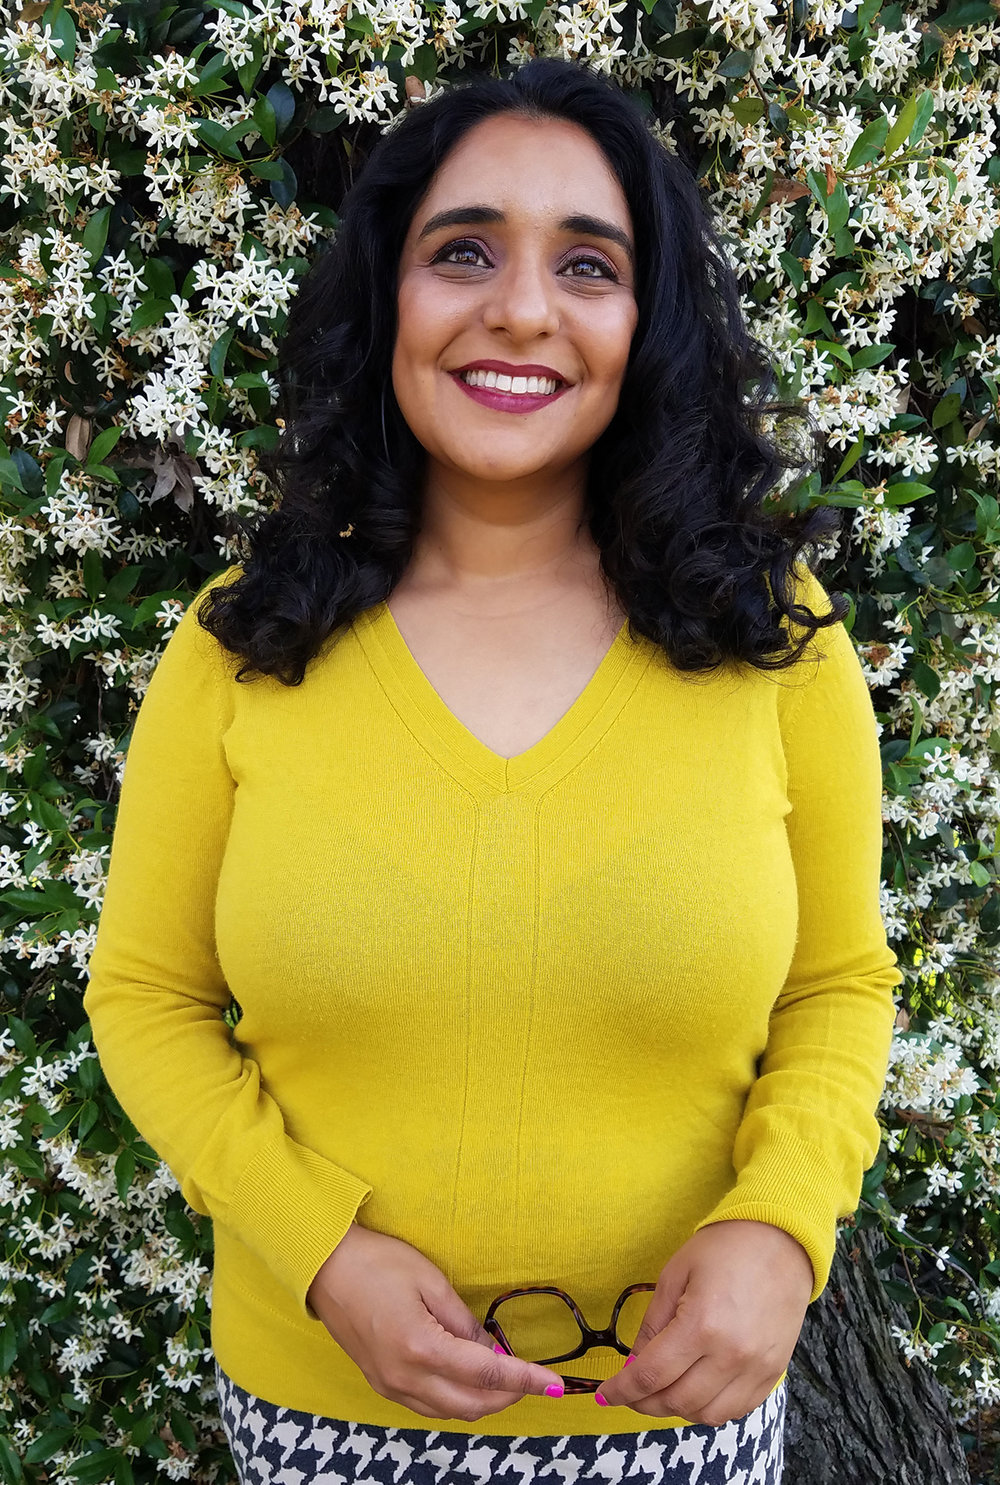 Organizing Your Writing with Scrivener with Neelanjana Banerjee - Online Two Saturdays11:00 am to 1:00 pm (Pacific)April 6 and 20, 2019Enrollment limit: 8 students$130 new; $120 returningHave you been working on a novel or other long project and have a multiple drafts all over your computer? Do you have folders of notes from all the workshops you've taken your project through? Do you have a long, glitchy Word document that takes forever to load? Along with talking about practical analog tools for drafting and revising longer projects, this two-day online seminar will walk you through how to use Scrivener—a software word processing and project management program aimed at writers—to help you draft and organize your novel or memoir.We'll work on figuring out the best way for you to divide your manuscript and upload it to the Scrivener interface, plus how to use tools like the virtual index cards and how to easily save multiple drafts. We'll also talk through alternatives to Scrivener like organizing your writing through Google Docs. This class is recommended for students who have longer projects, but it can be useful for anyone interested in learning about Scrivener and gaining tools for structuring and revising your writing. Students will receive a discount code to purchase the Scrivener 3 program before the class starts.This class is open to students of all levels and will meet online in real time using the Zoom platform. We will contact you with details closer to the date of the class.